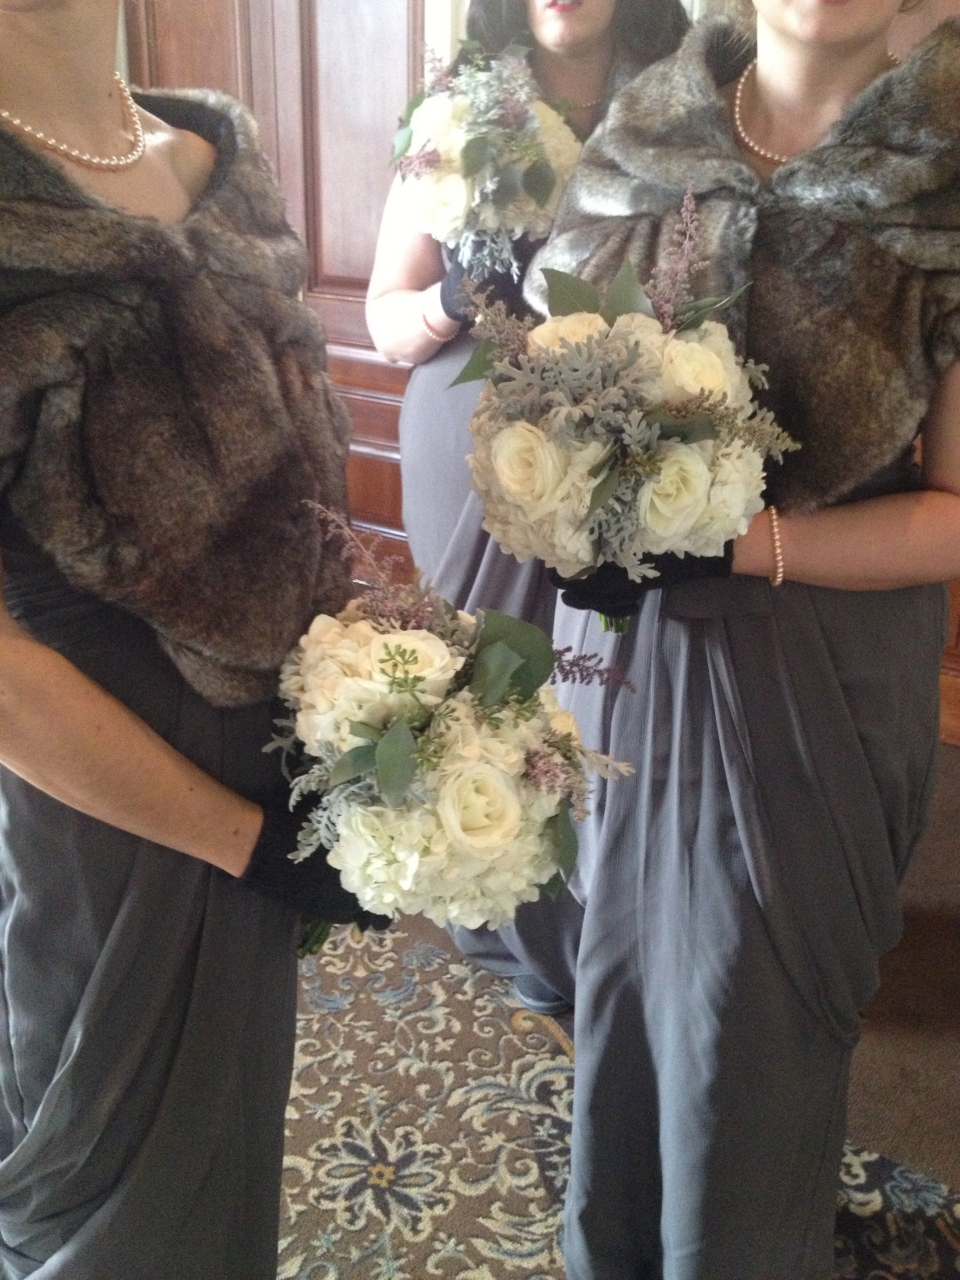 Winter bridesmaids bouquets of hydrangea, roses, dusty miller and seeded eucalyptus